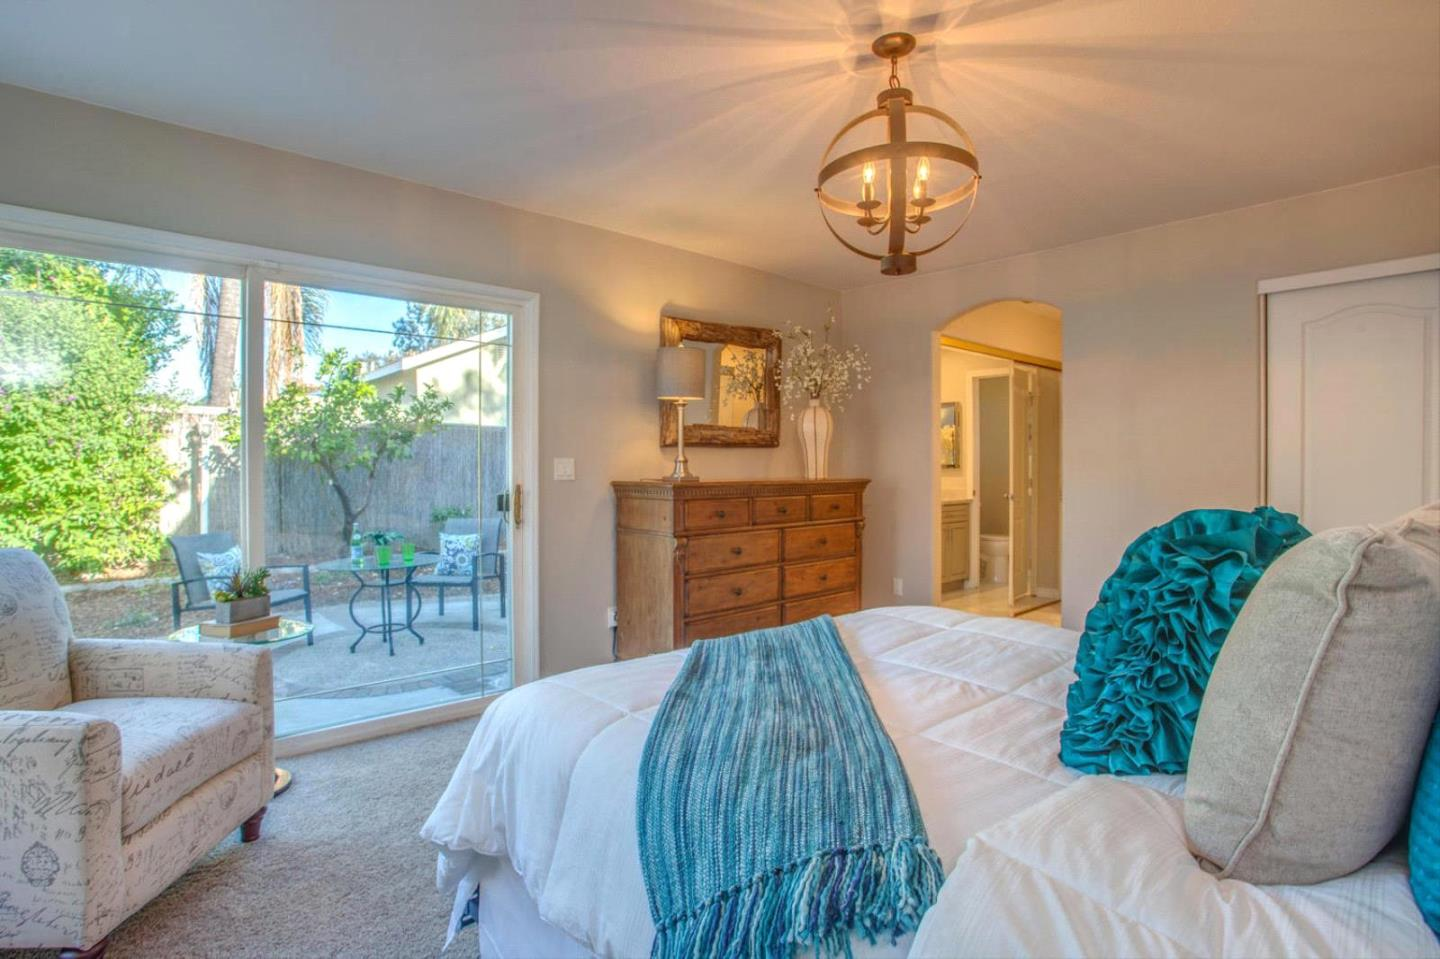 Additional photo for property listing at 5096 Bougainvillea Drive  San Jose, カリフォルニア 95111 アメリカ合衆国